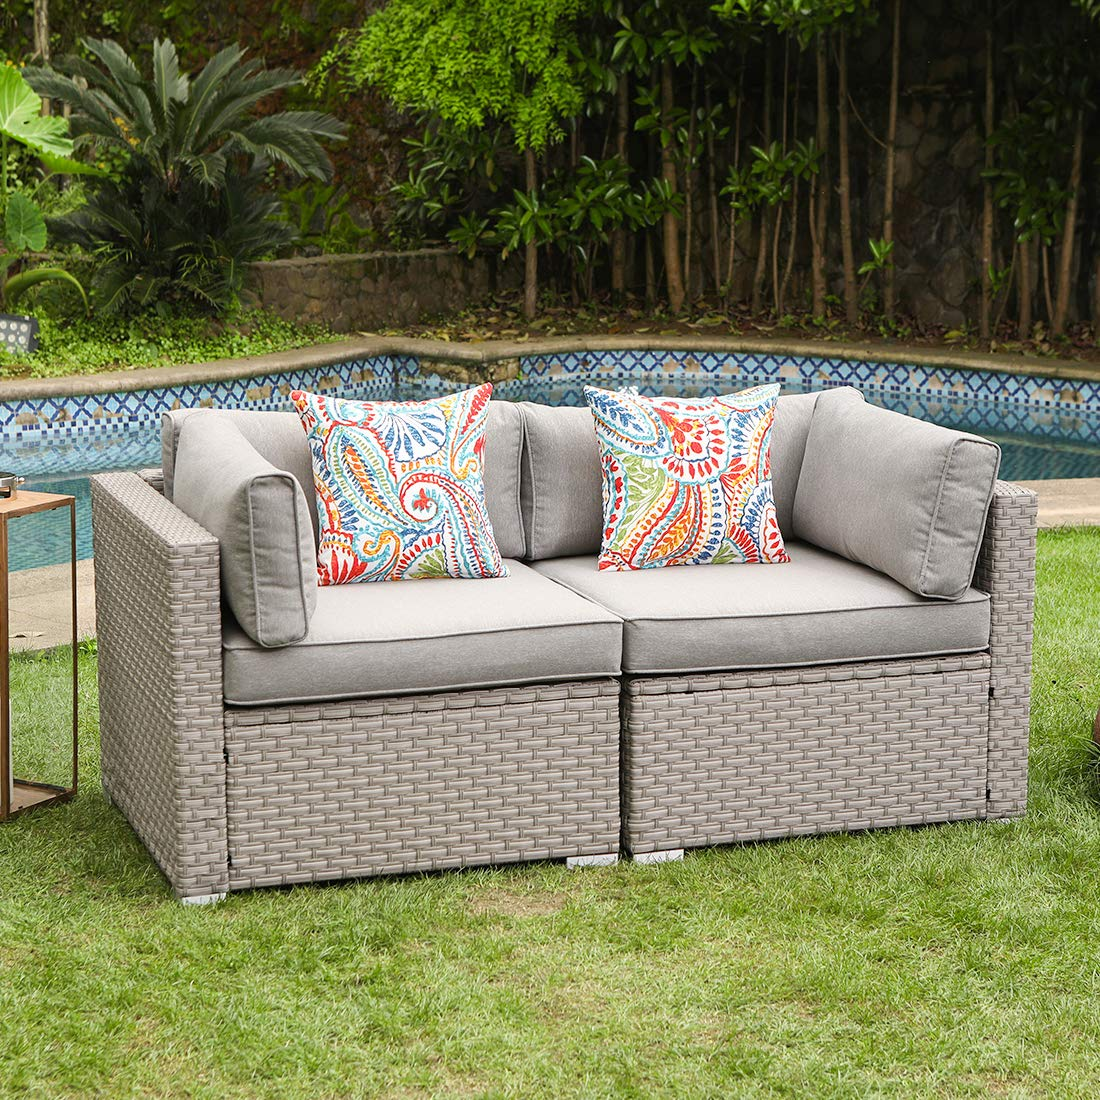 COSIEST 2-Piece Outdoor Furniture Loveseat Wicker Sectional Sofa Set w Warm Gray Thick Cushions, 2 Floral Fantasy Pillows for Garden, Pool, Backyard by COSIEST